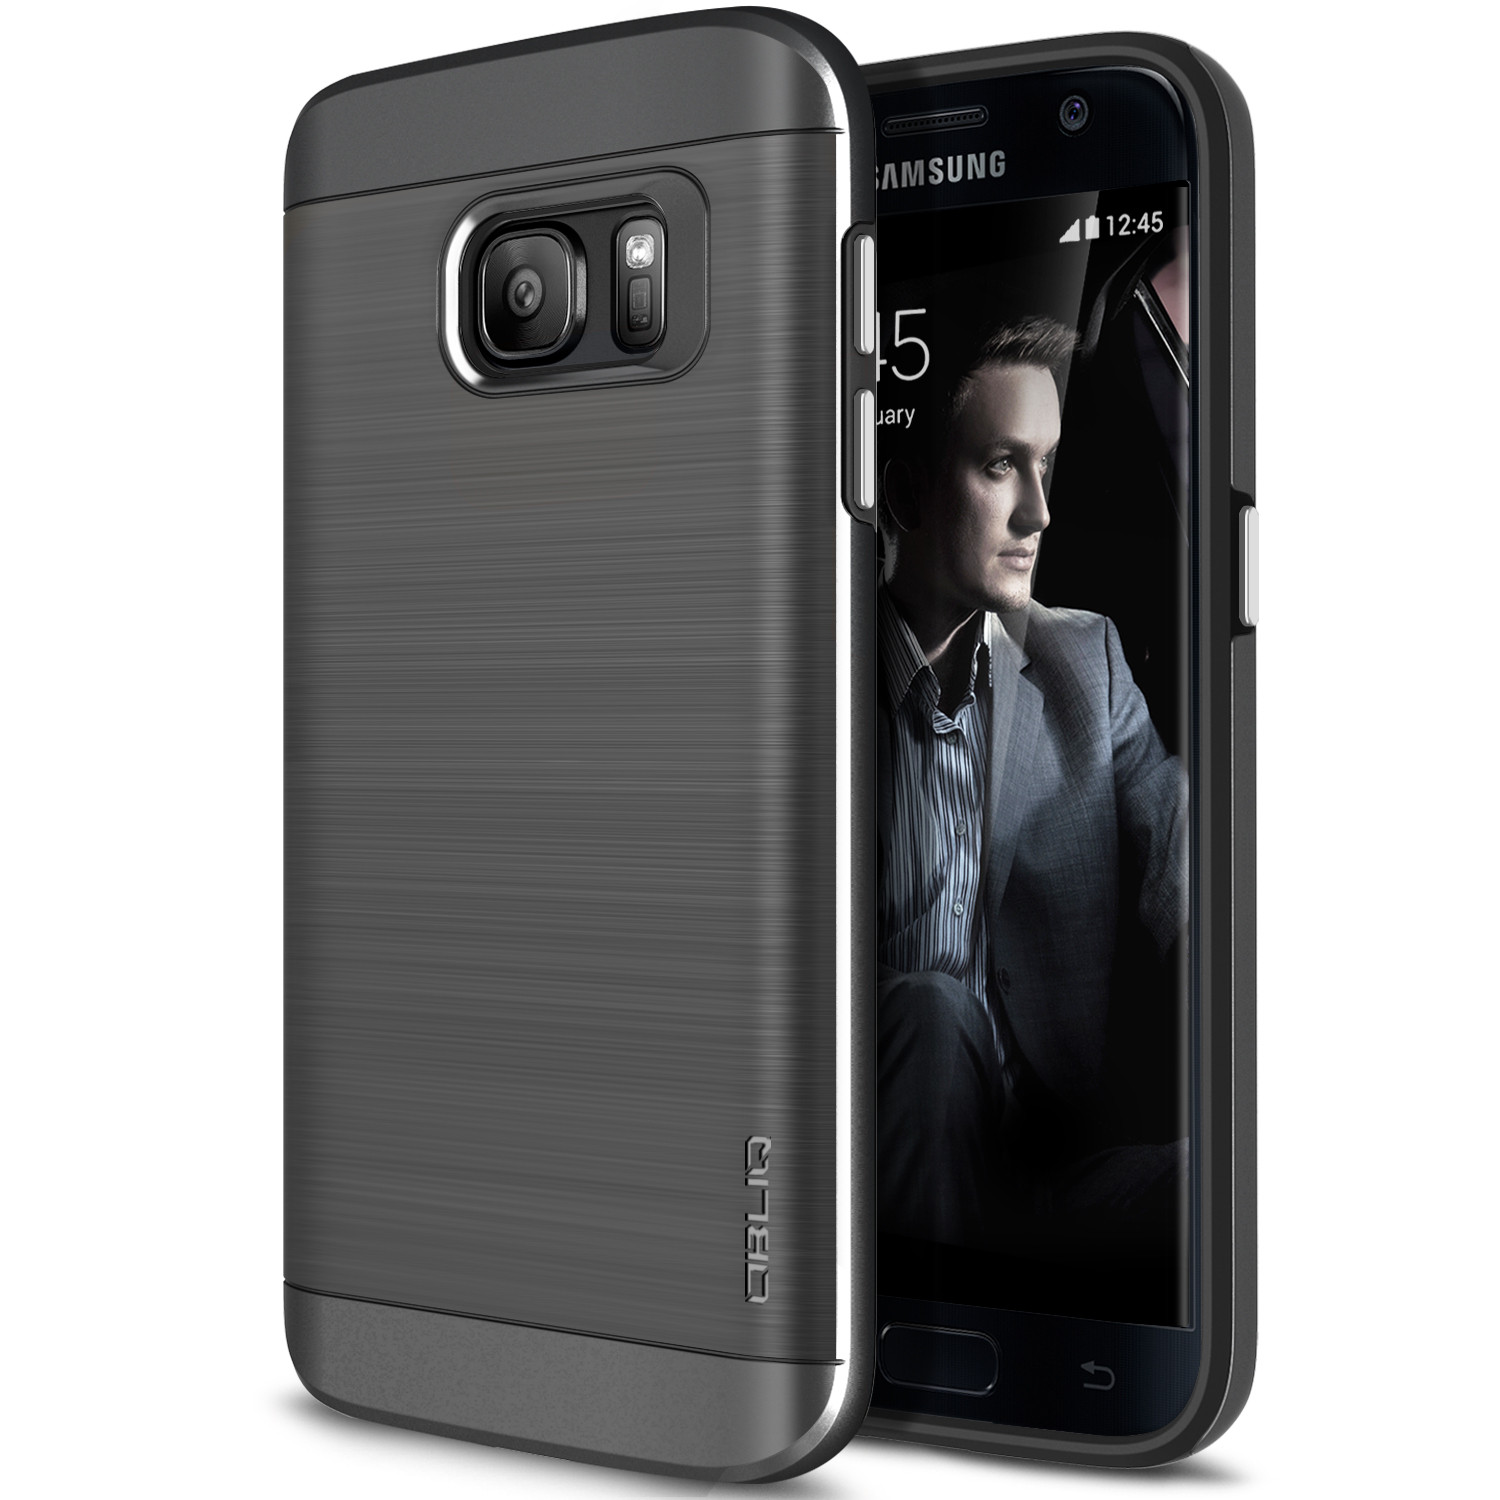 OBLIQ, Galaxy S7 Case [Slim Meta][Titanium Space Gray] Premium Metallic Brushed Dual Layer TPU Inner PC Exterior Heavy Duty Protective Anti Scratch Cover for Samsung Galaxy S7